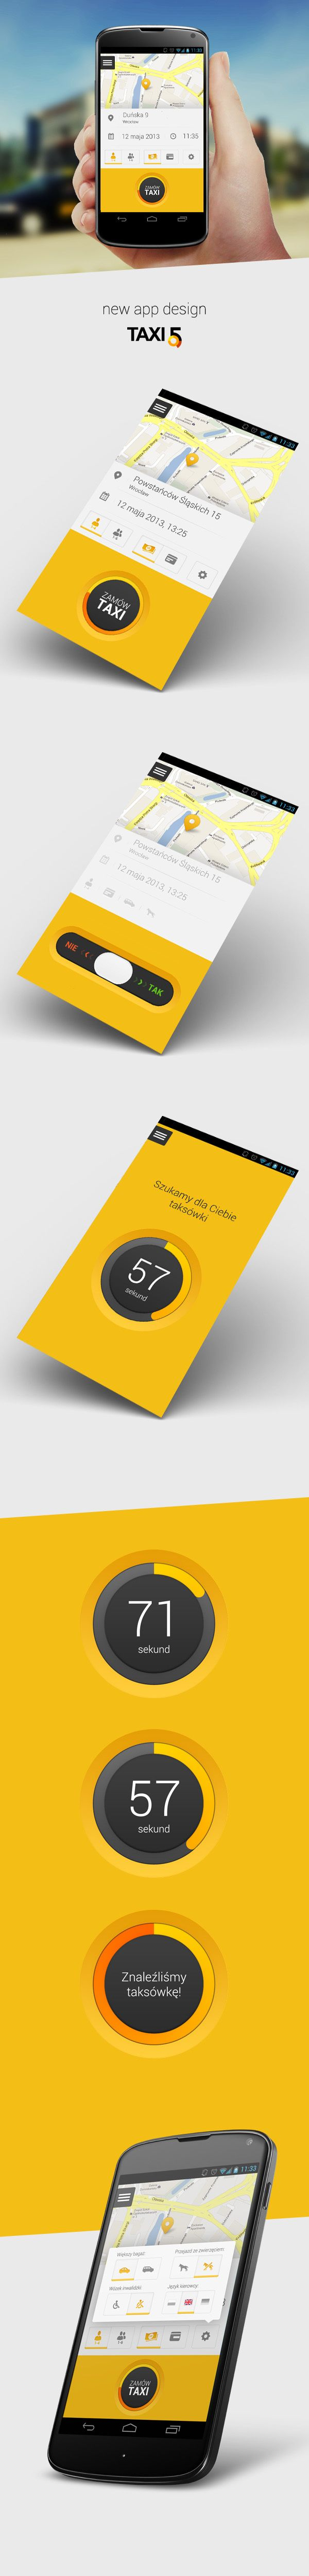 App Design for TAXI5 by Piotr Radziwon, via Behance *** #app #gui #ui #behance